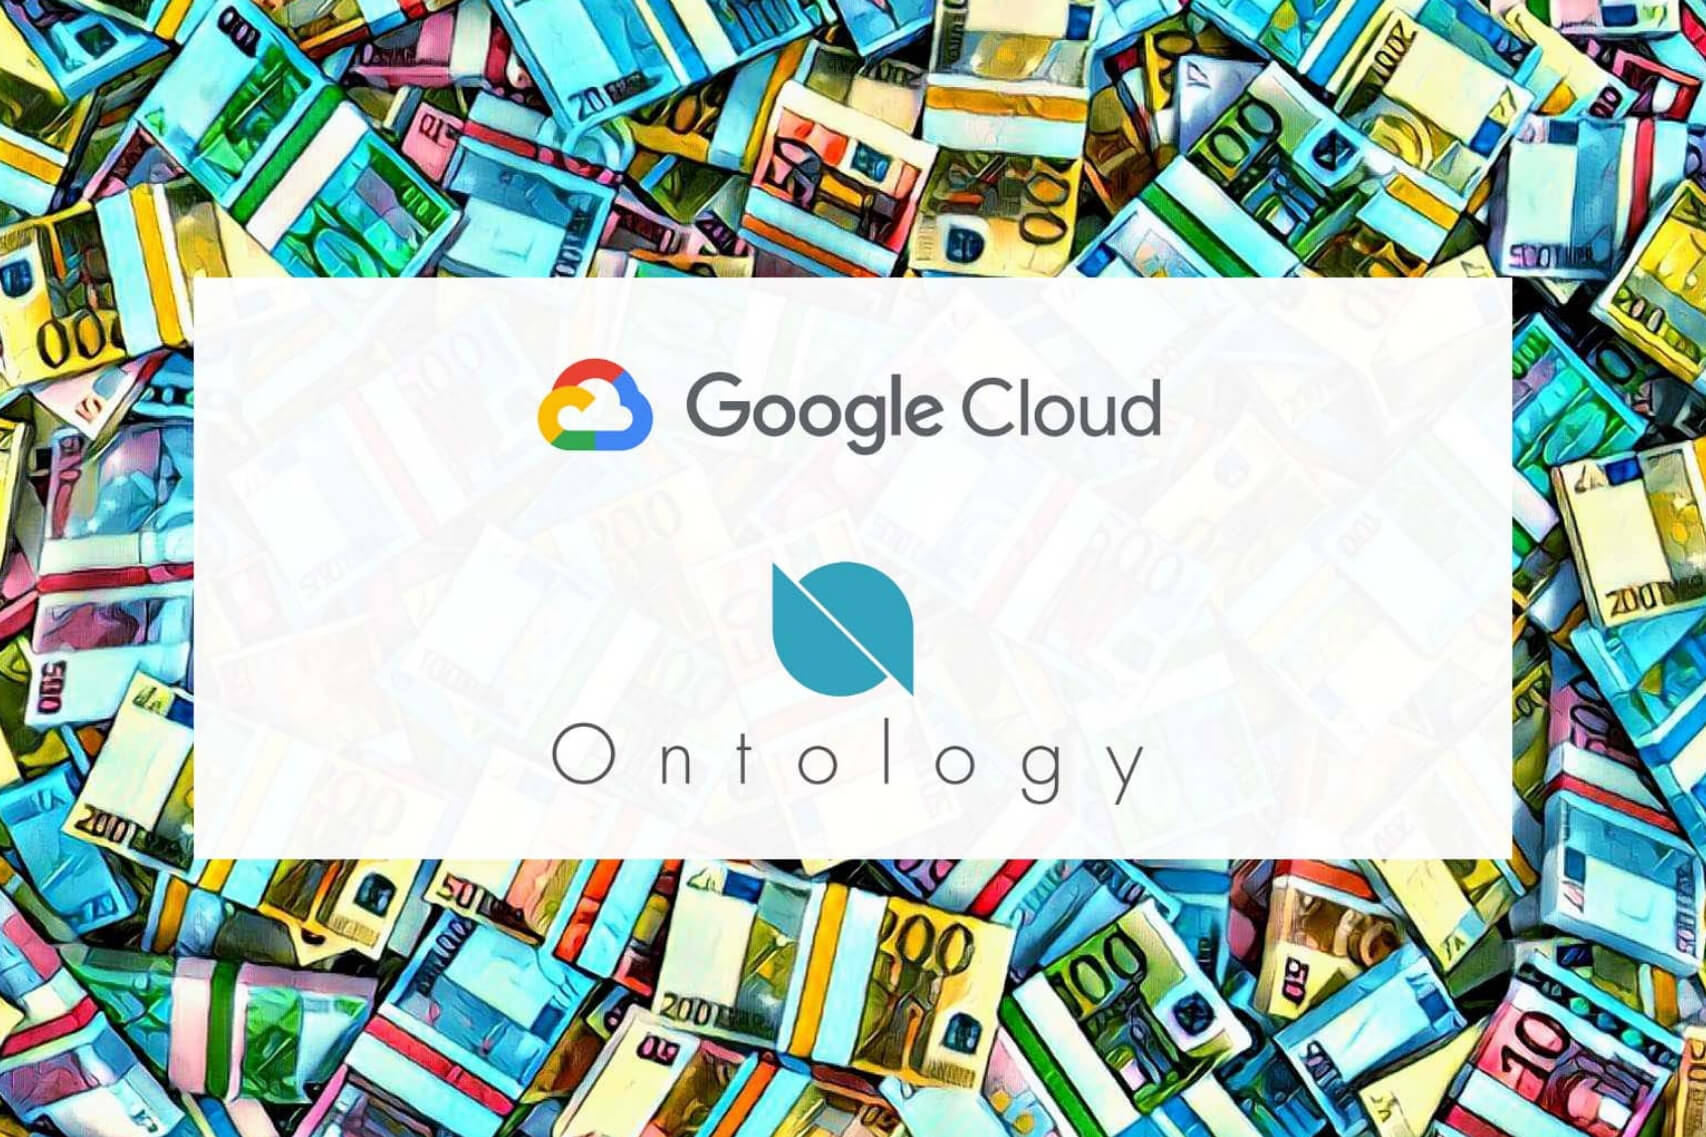 google cloud and ont